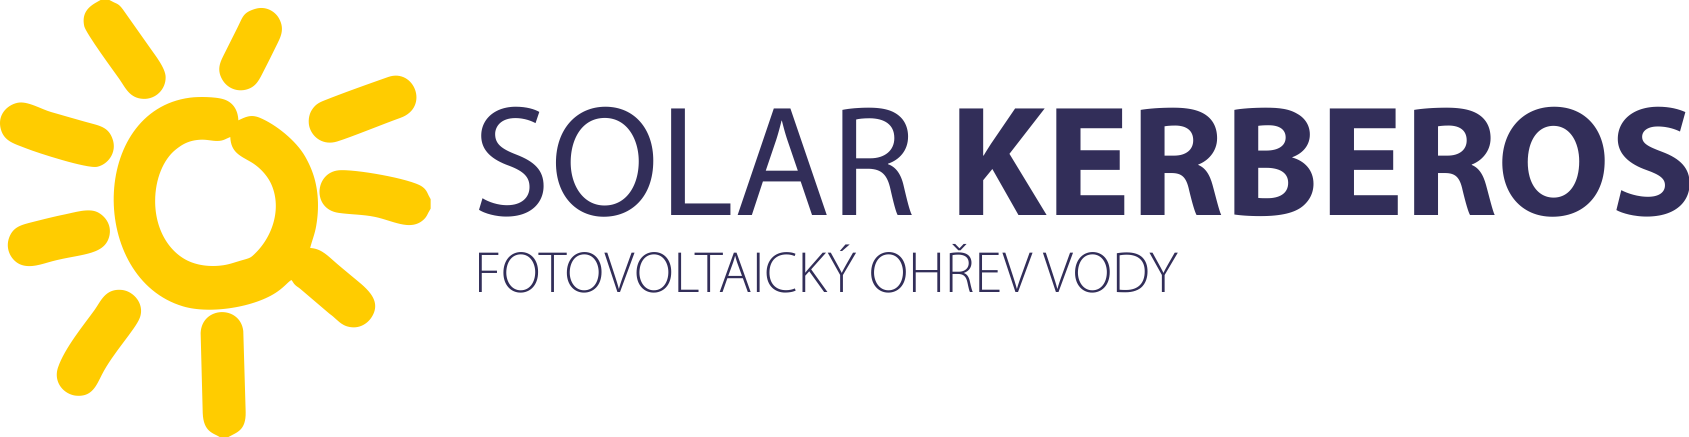 SOLAR KERBEROS - solární ohřev vody